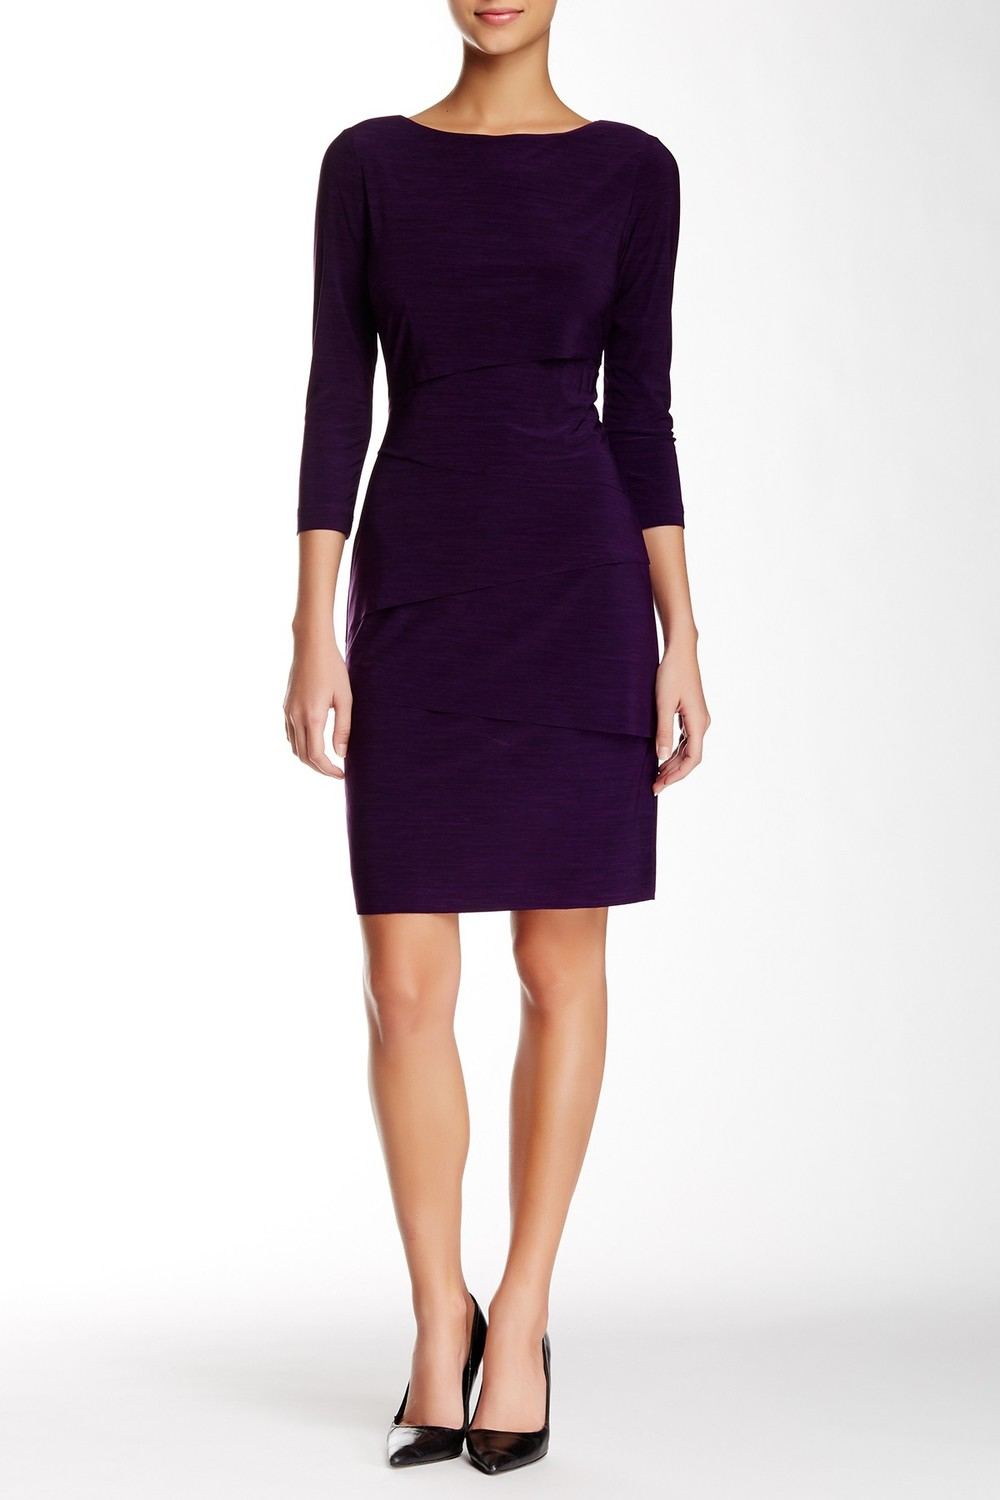 Tahari 3/4 Length Sleeve Melane Jersey Sheath Dress. Nordstrom Rack. Was: $128 Now: $49.